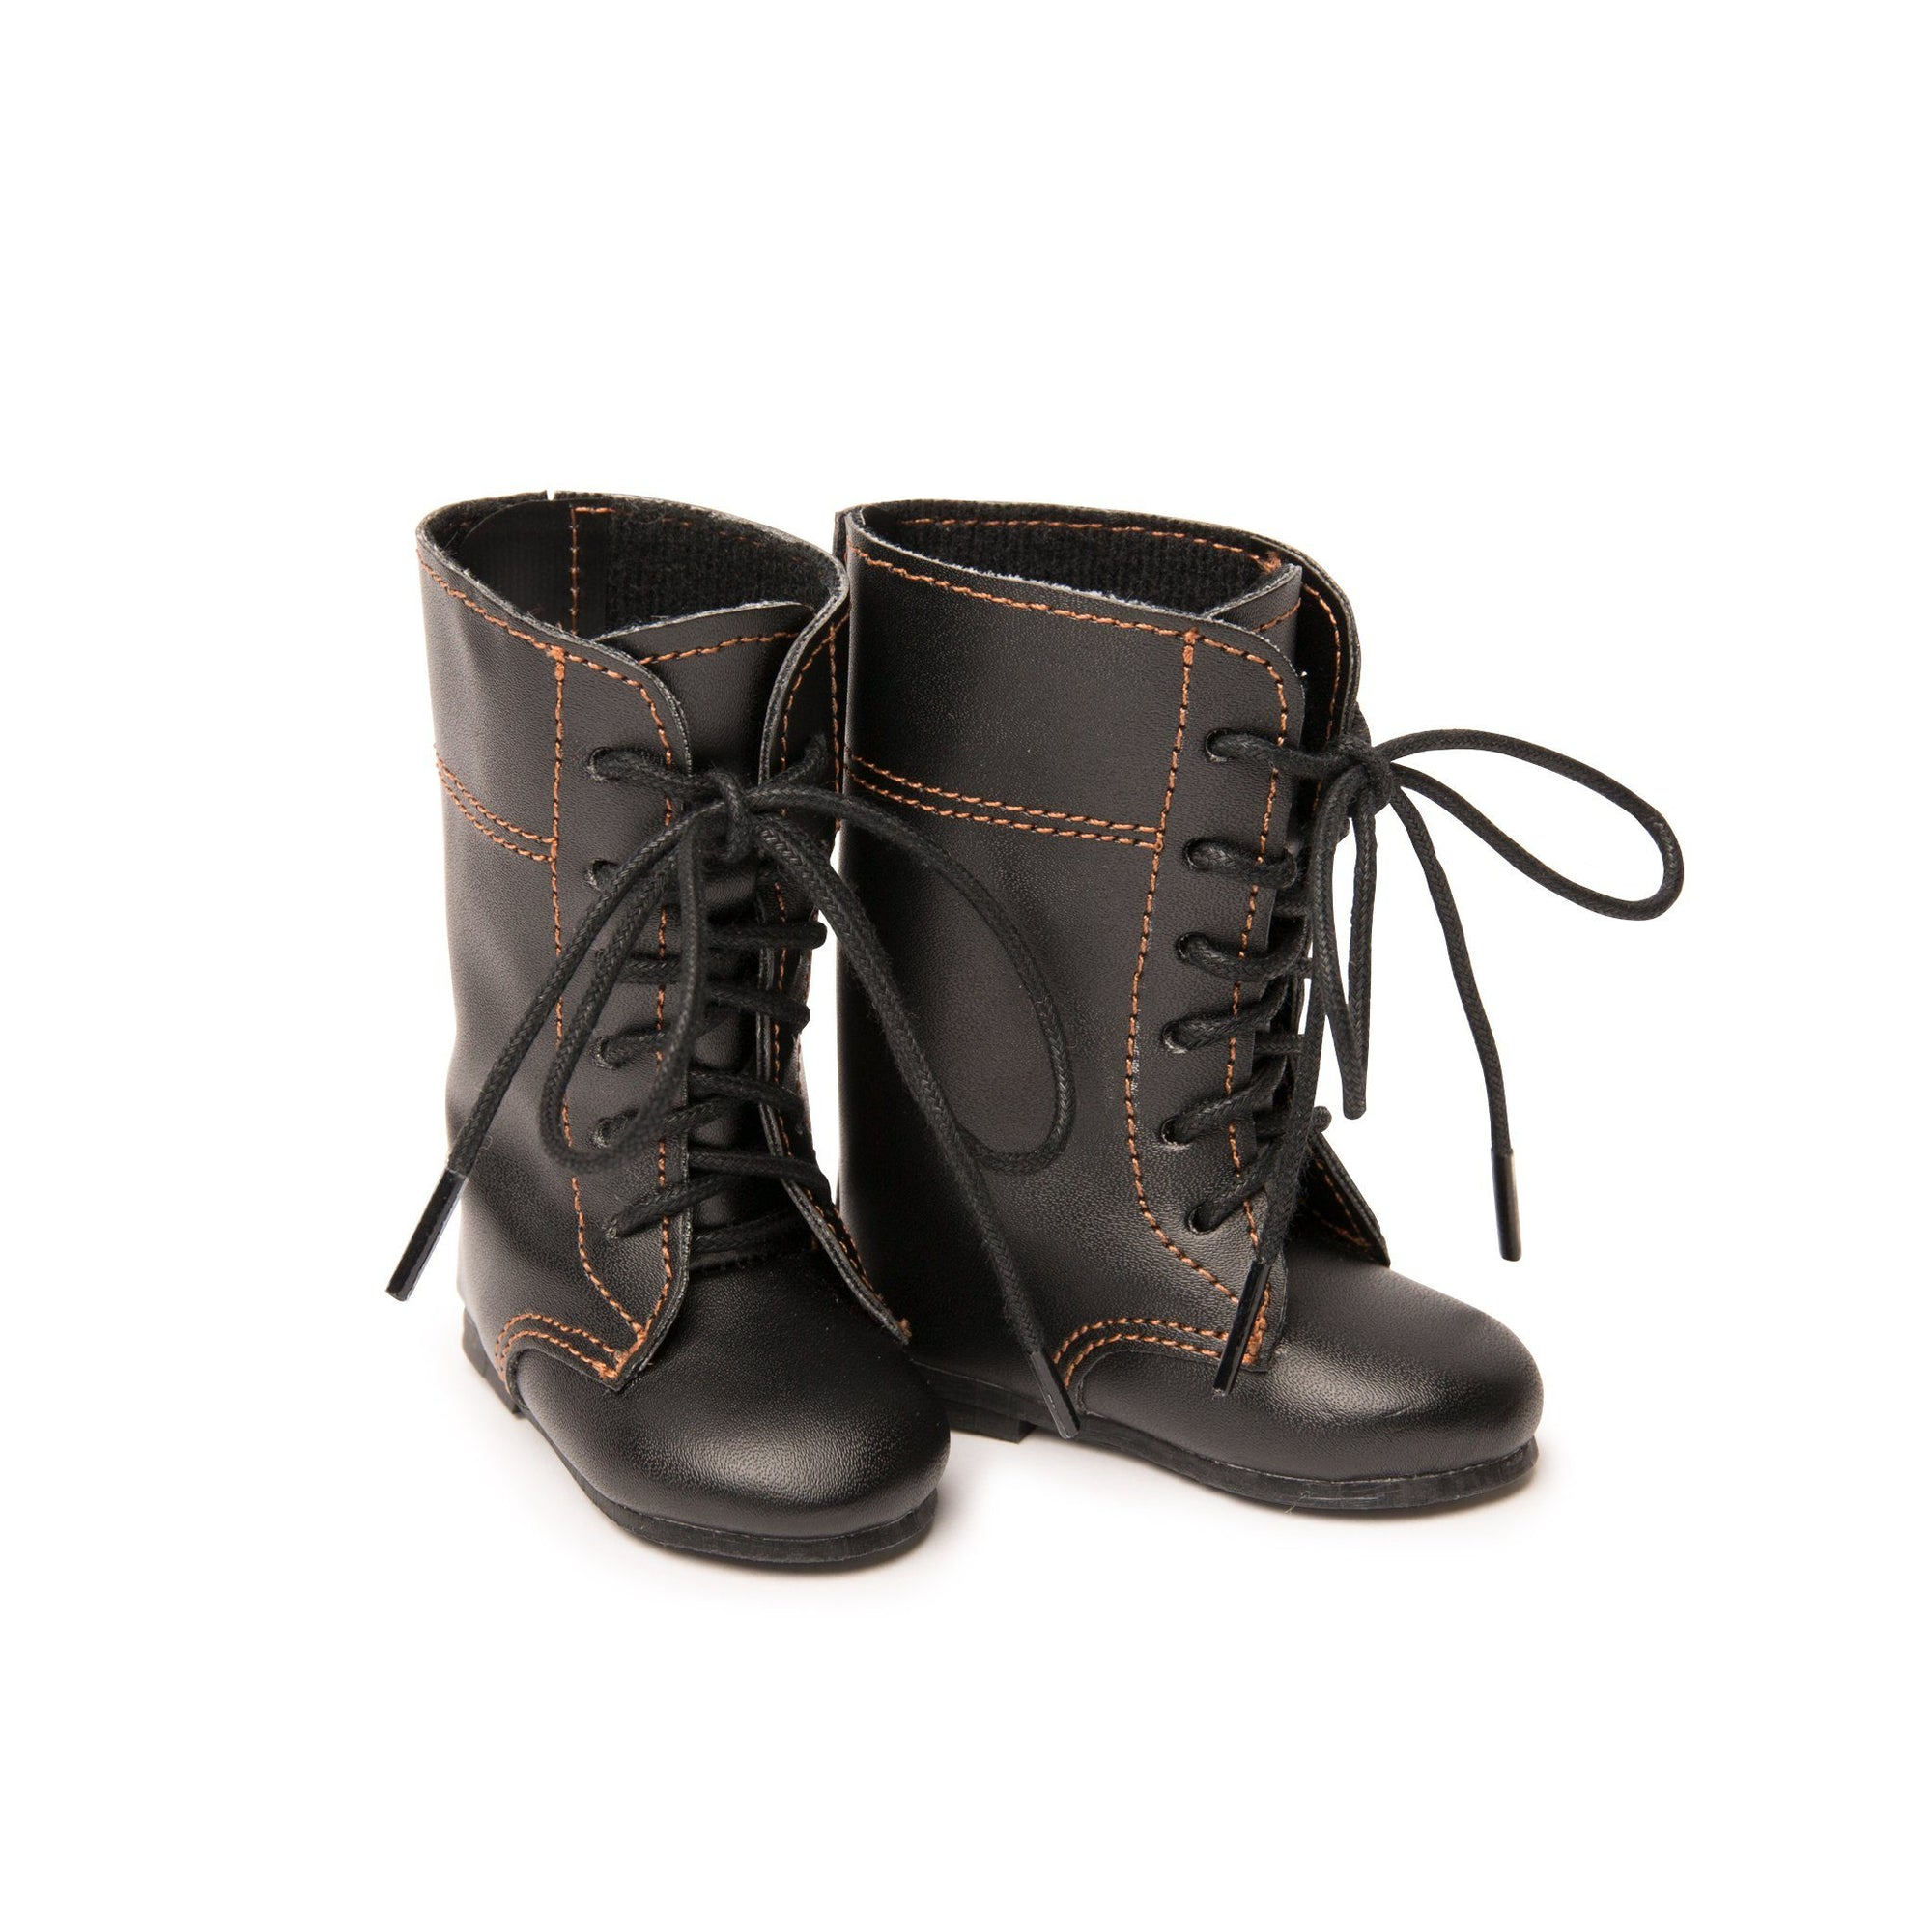 Black tall lace-up boots firs all 18 inch dolls.